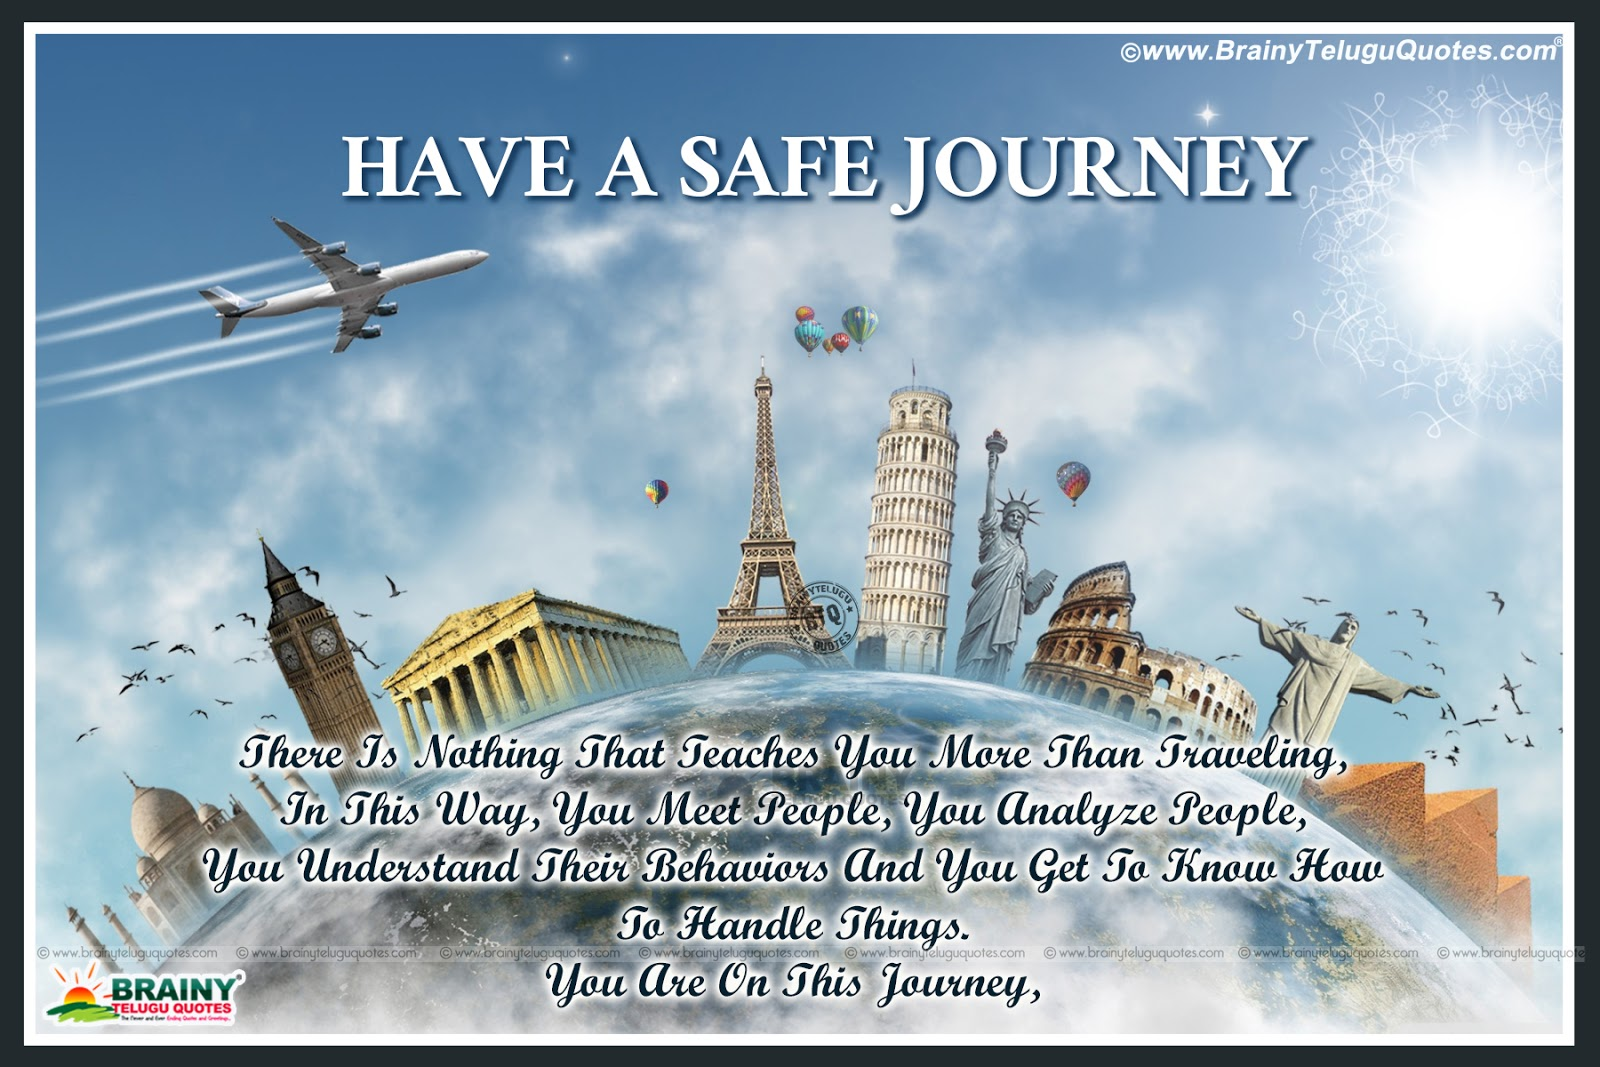 Happy journey with safe return quotes in english happy journey sms messagessafe journey quoteshappy journey with safe return quotes m4hsunfo